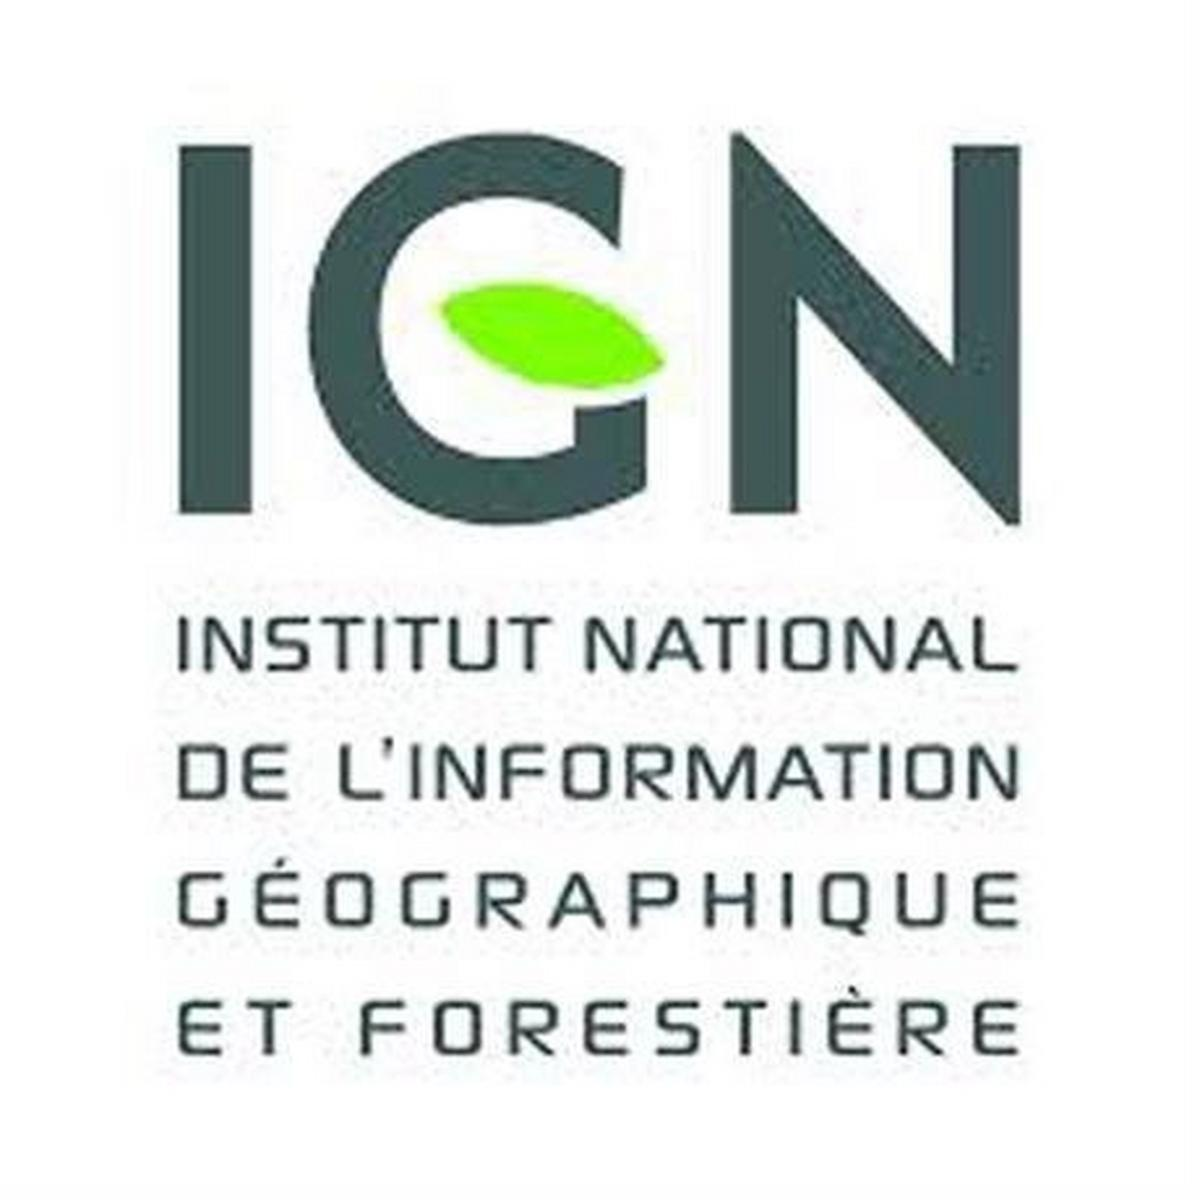 Ign Maps France IGN Map: Tignes - Val d'Isere 3633 ET 1:25,000